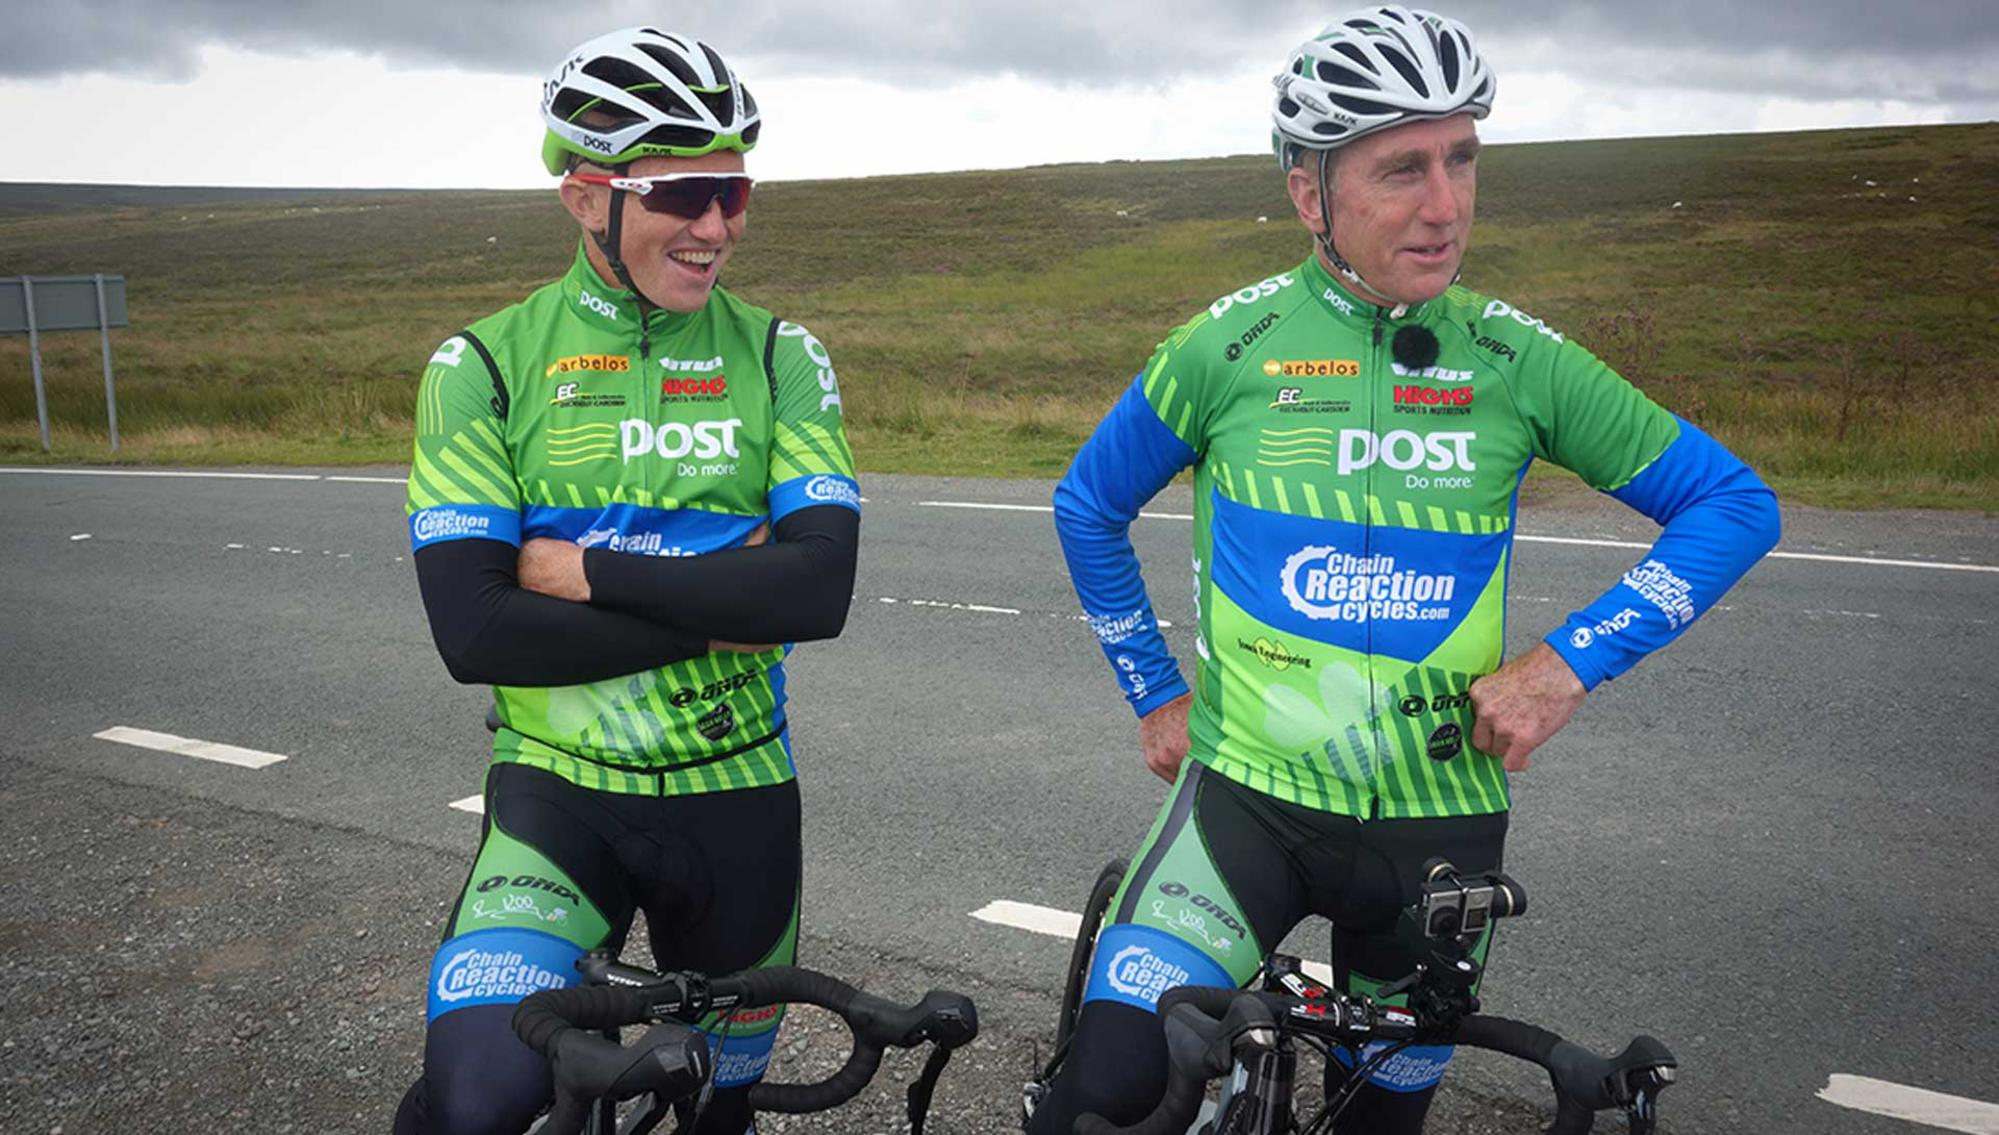 c8ccb76a1 Sean Kelly says former An Post team will wait to return to cycling ...